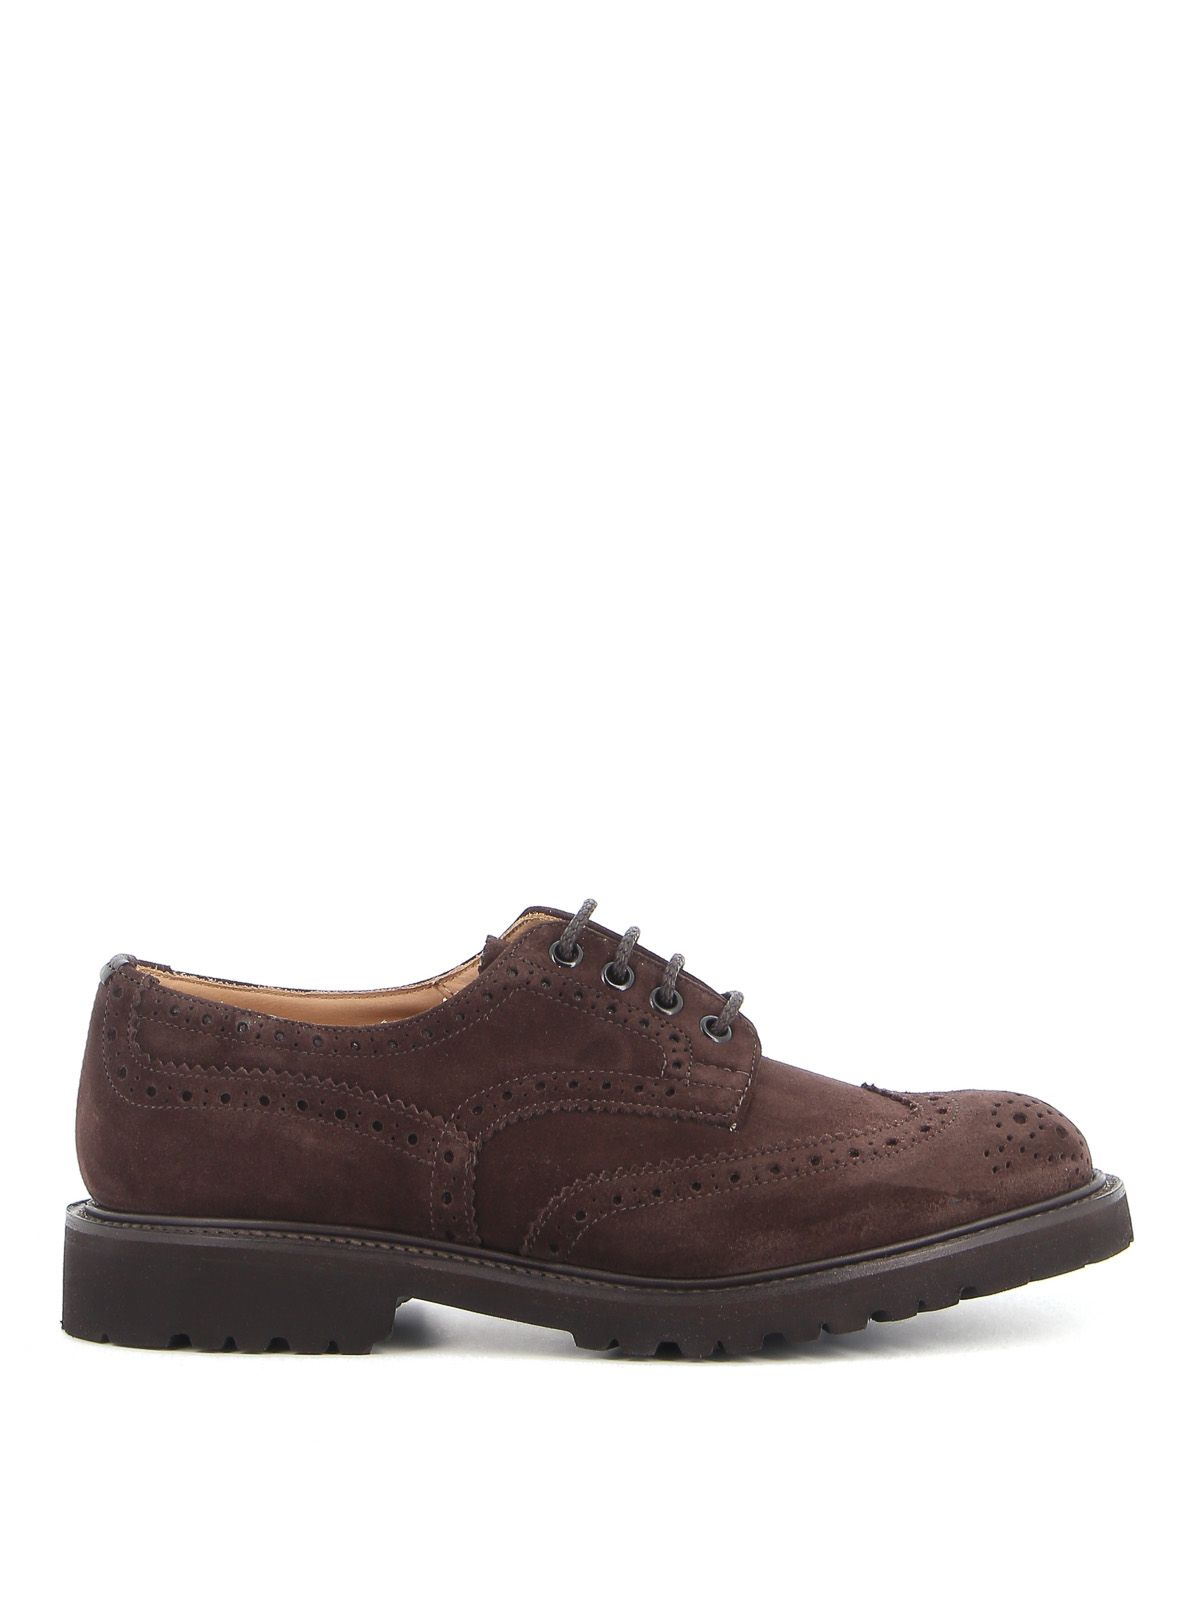 TRICKER'S TRICKER'S MEN'S BROWN SUEDE LACE-UP SHOES